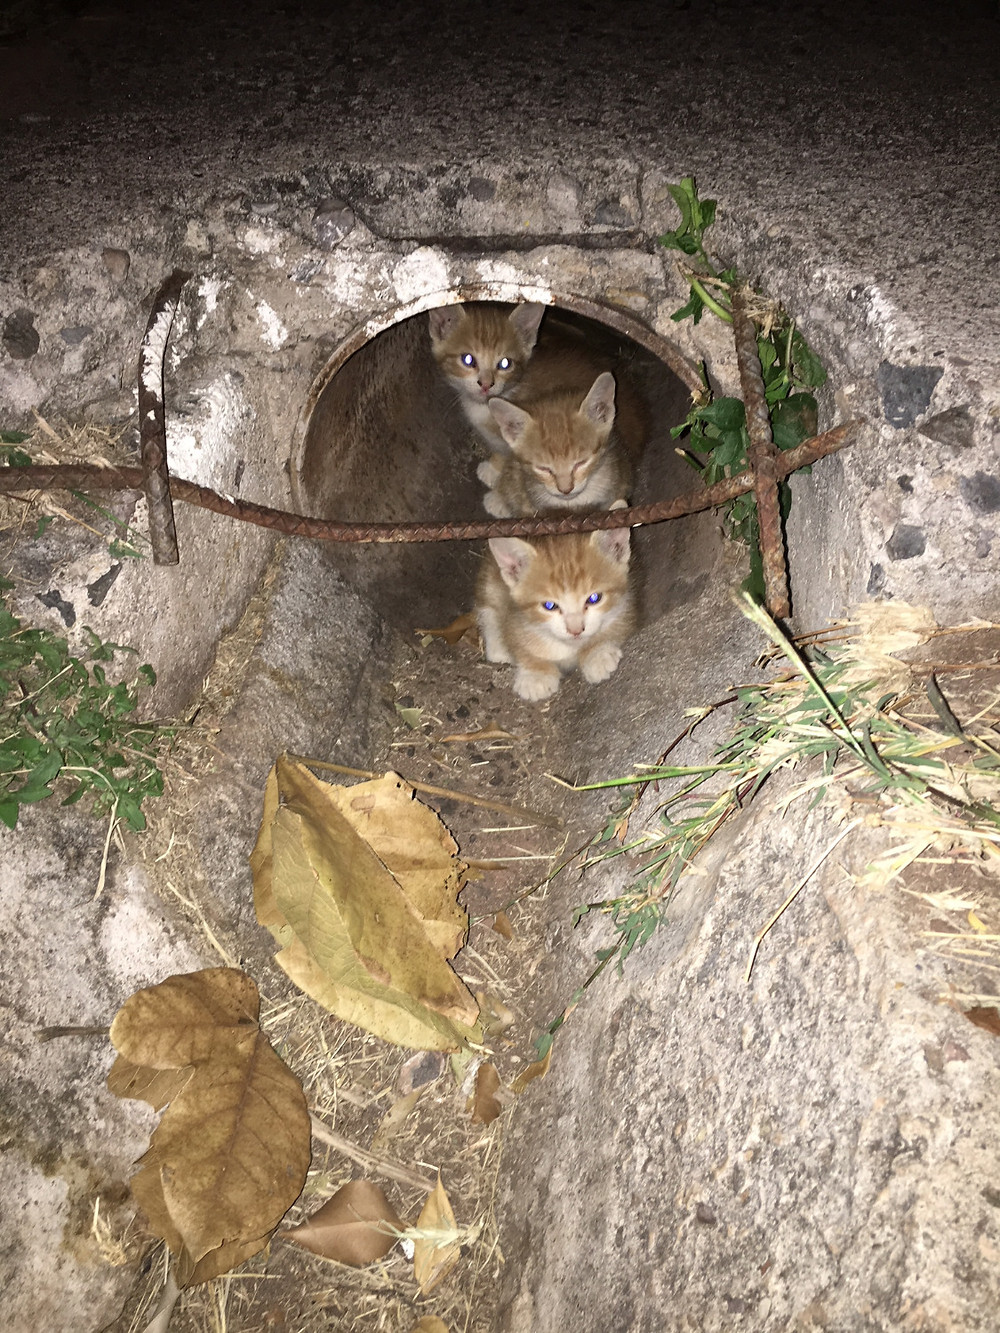 3 of Olive's kitties-Leanne wasn't able to capture them before she departed the base